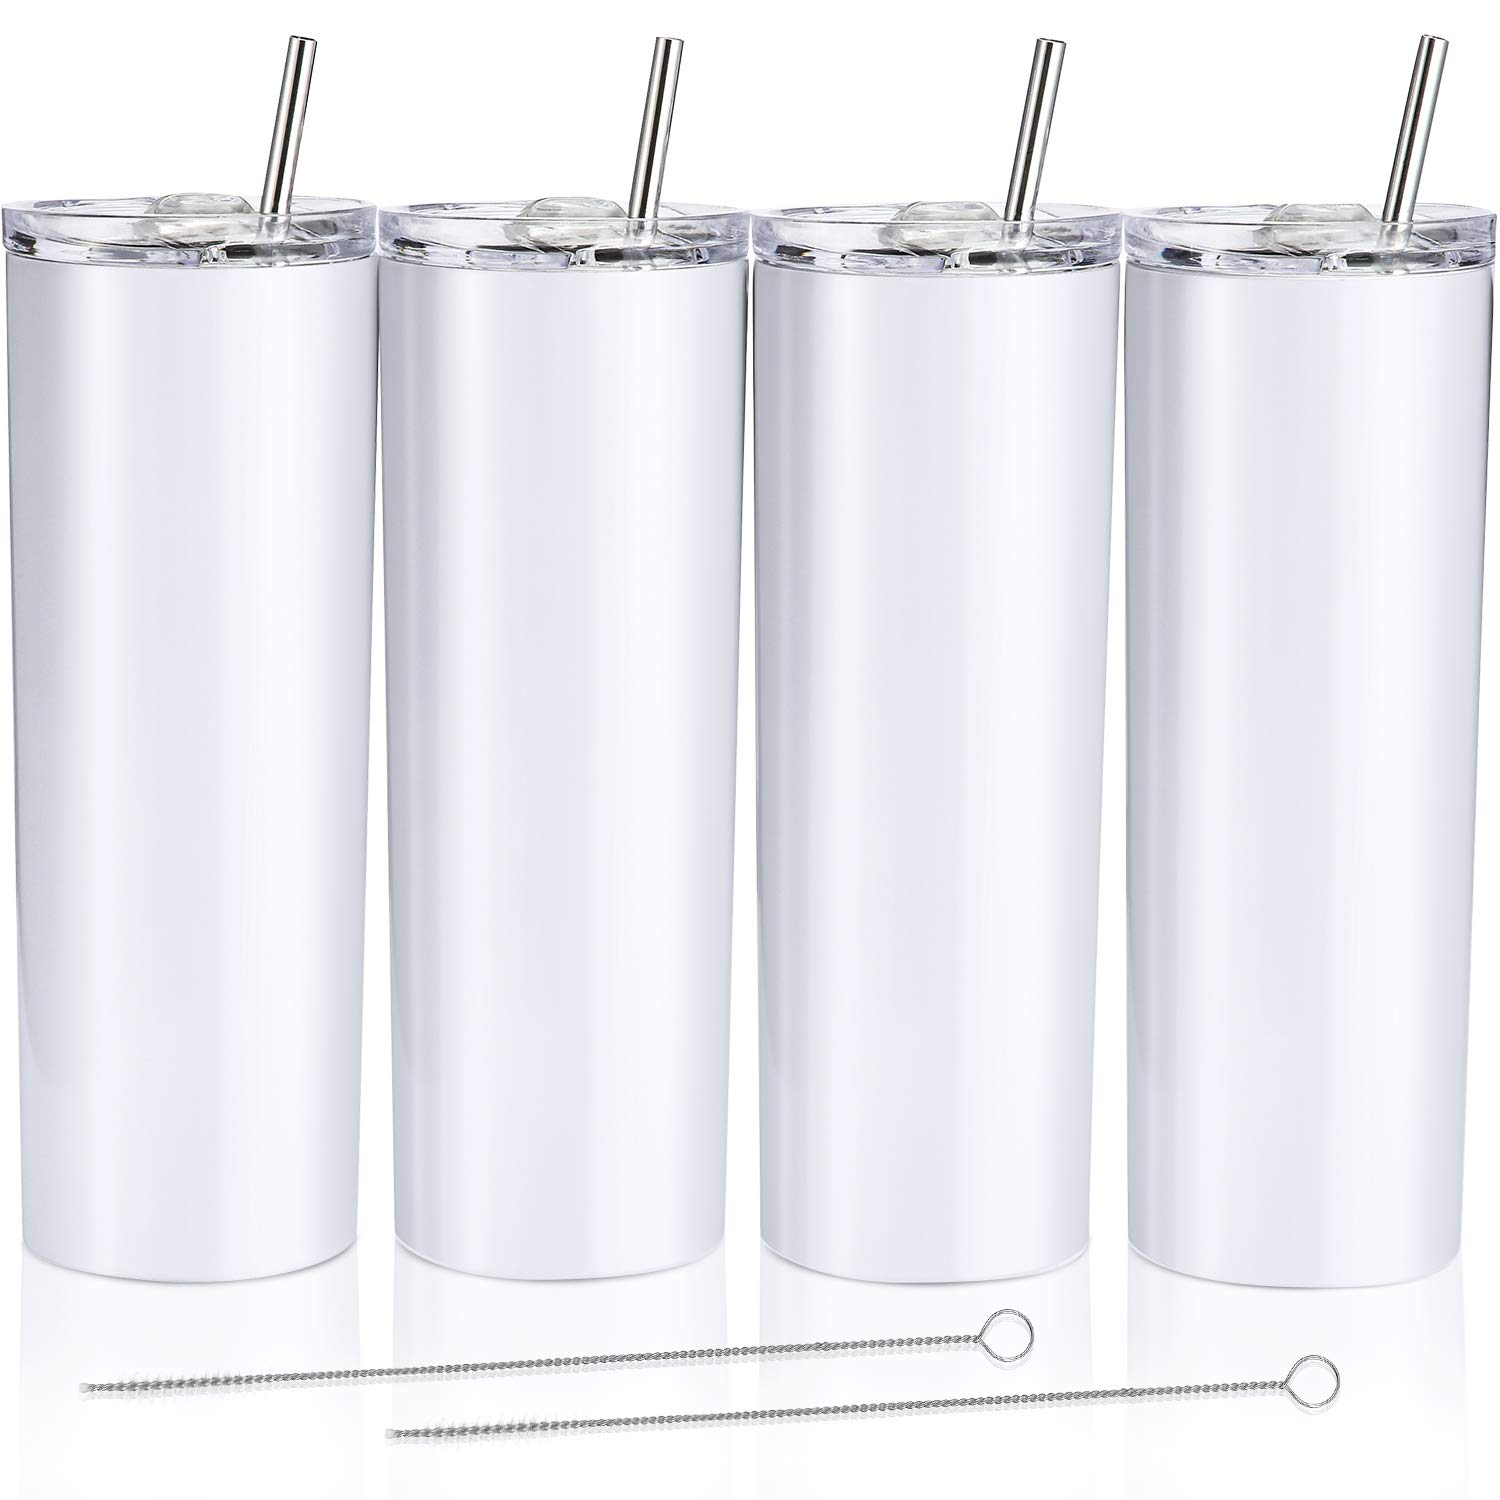 4 Pack Classic Tumbler Stainless Steel Double-Insulated Water Tumbler Cup with Lid and Straw Vacuum Travel Mug Gift with Cleaning Brush (White, 20 oz)